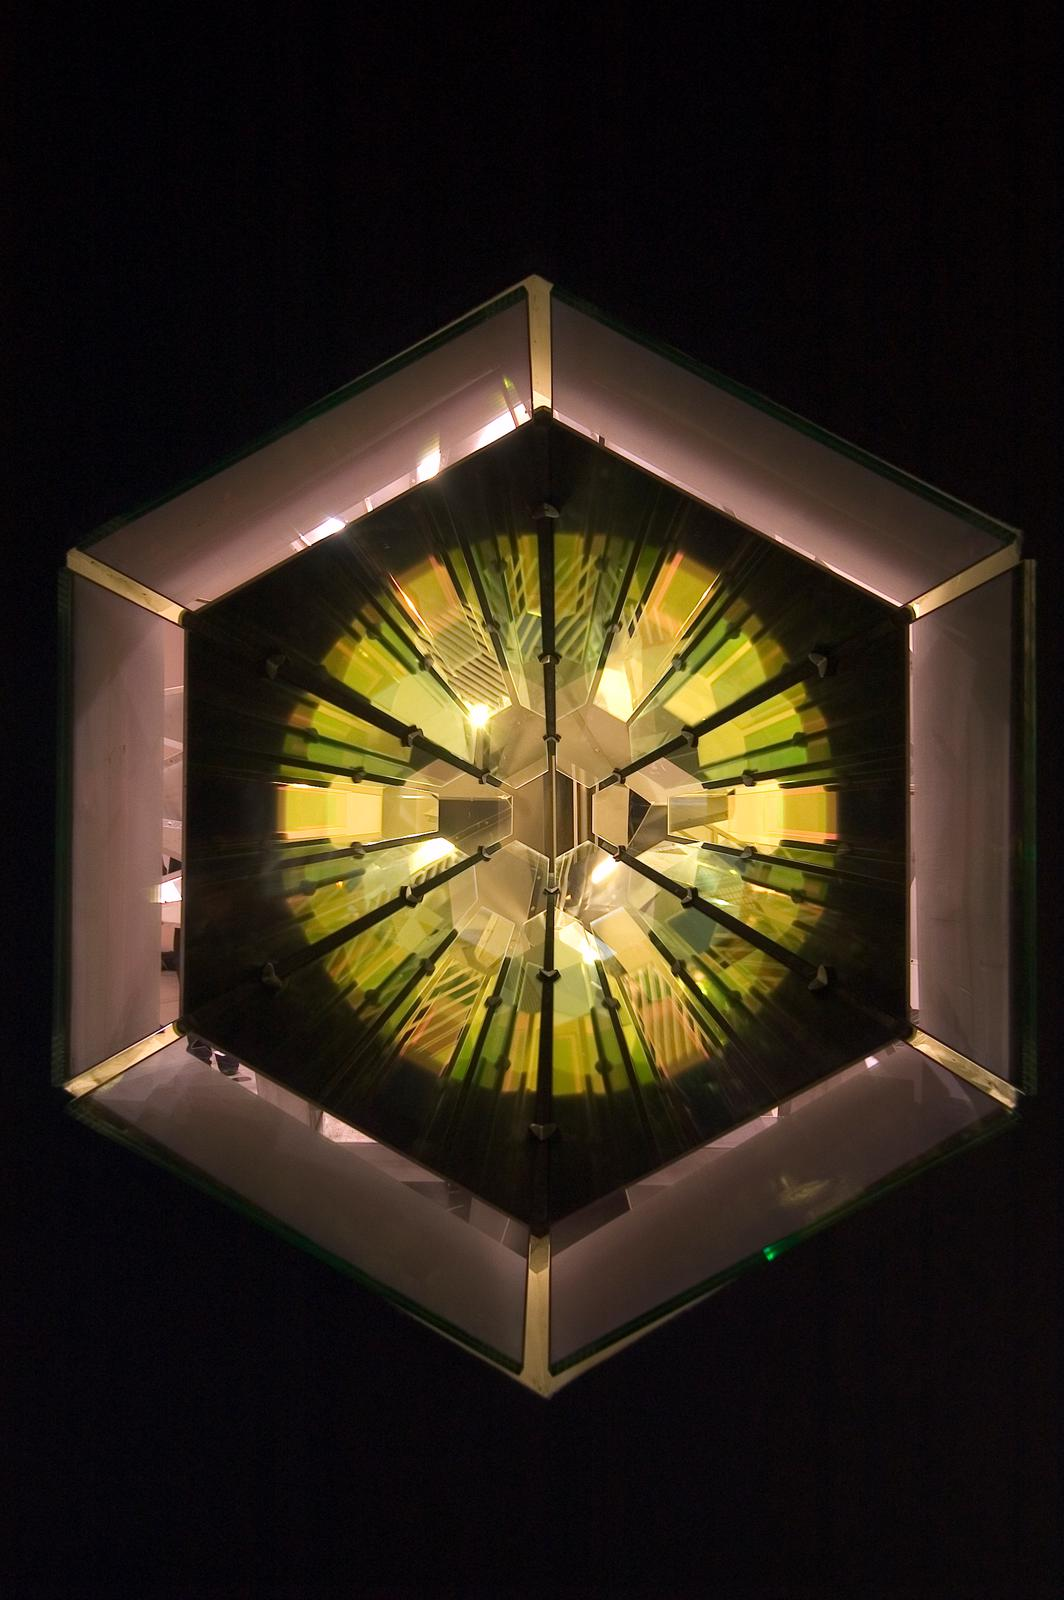 Red Green Kaleidoscope Artwork Studio Olafur Eliasson